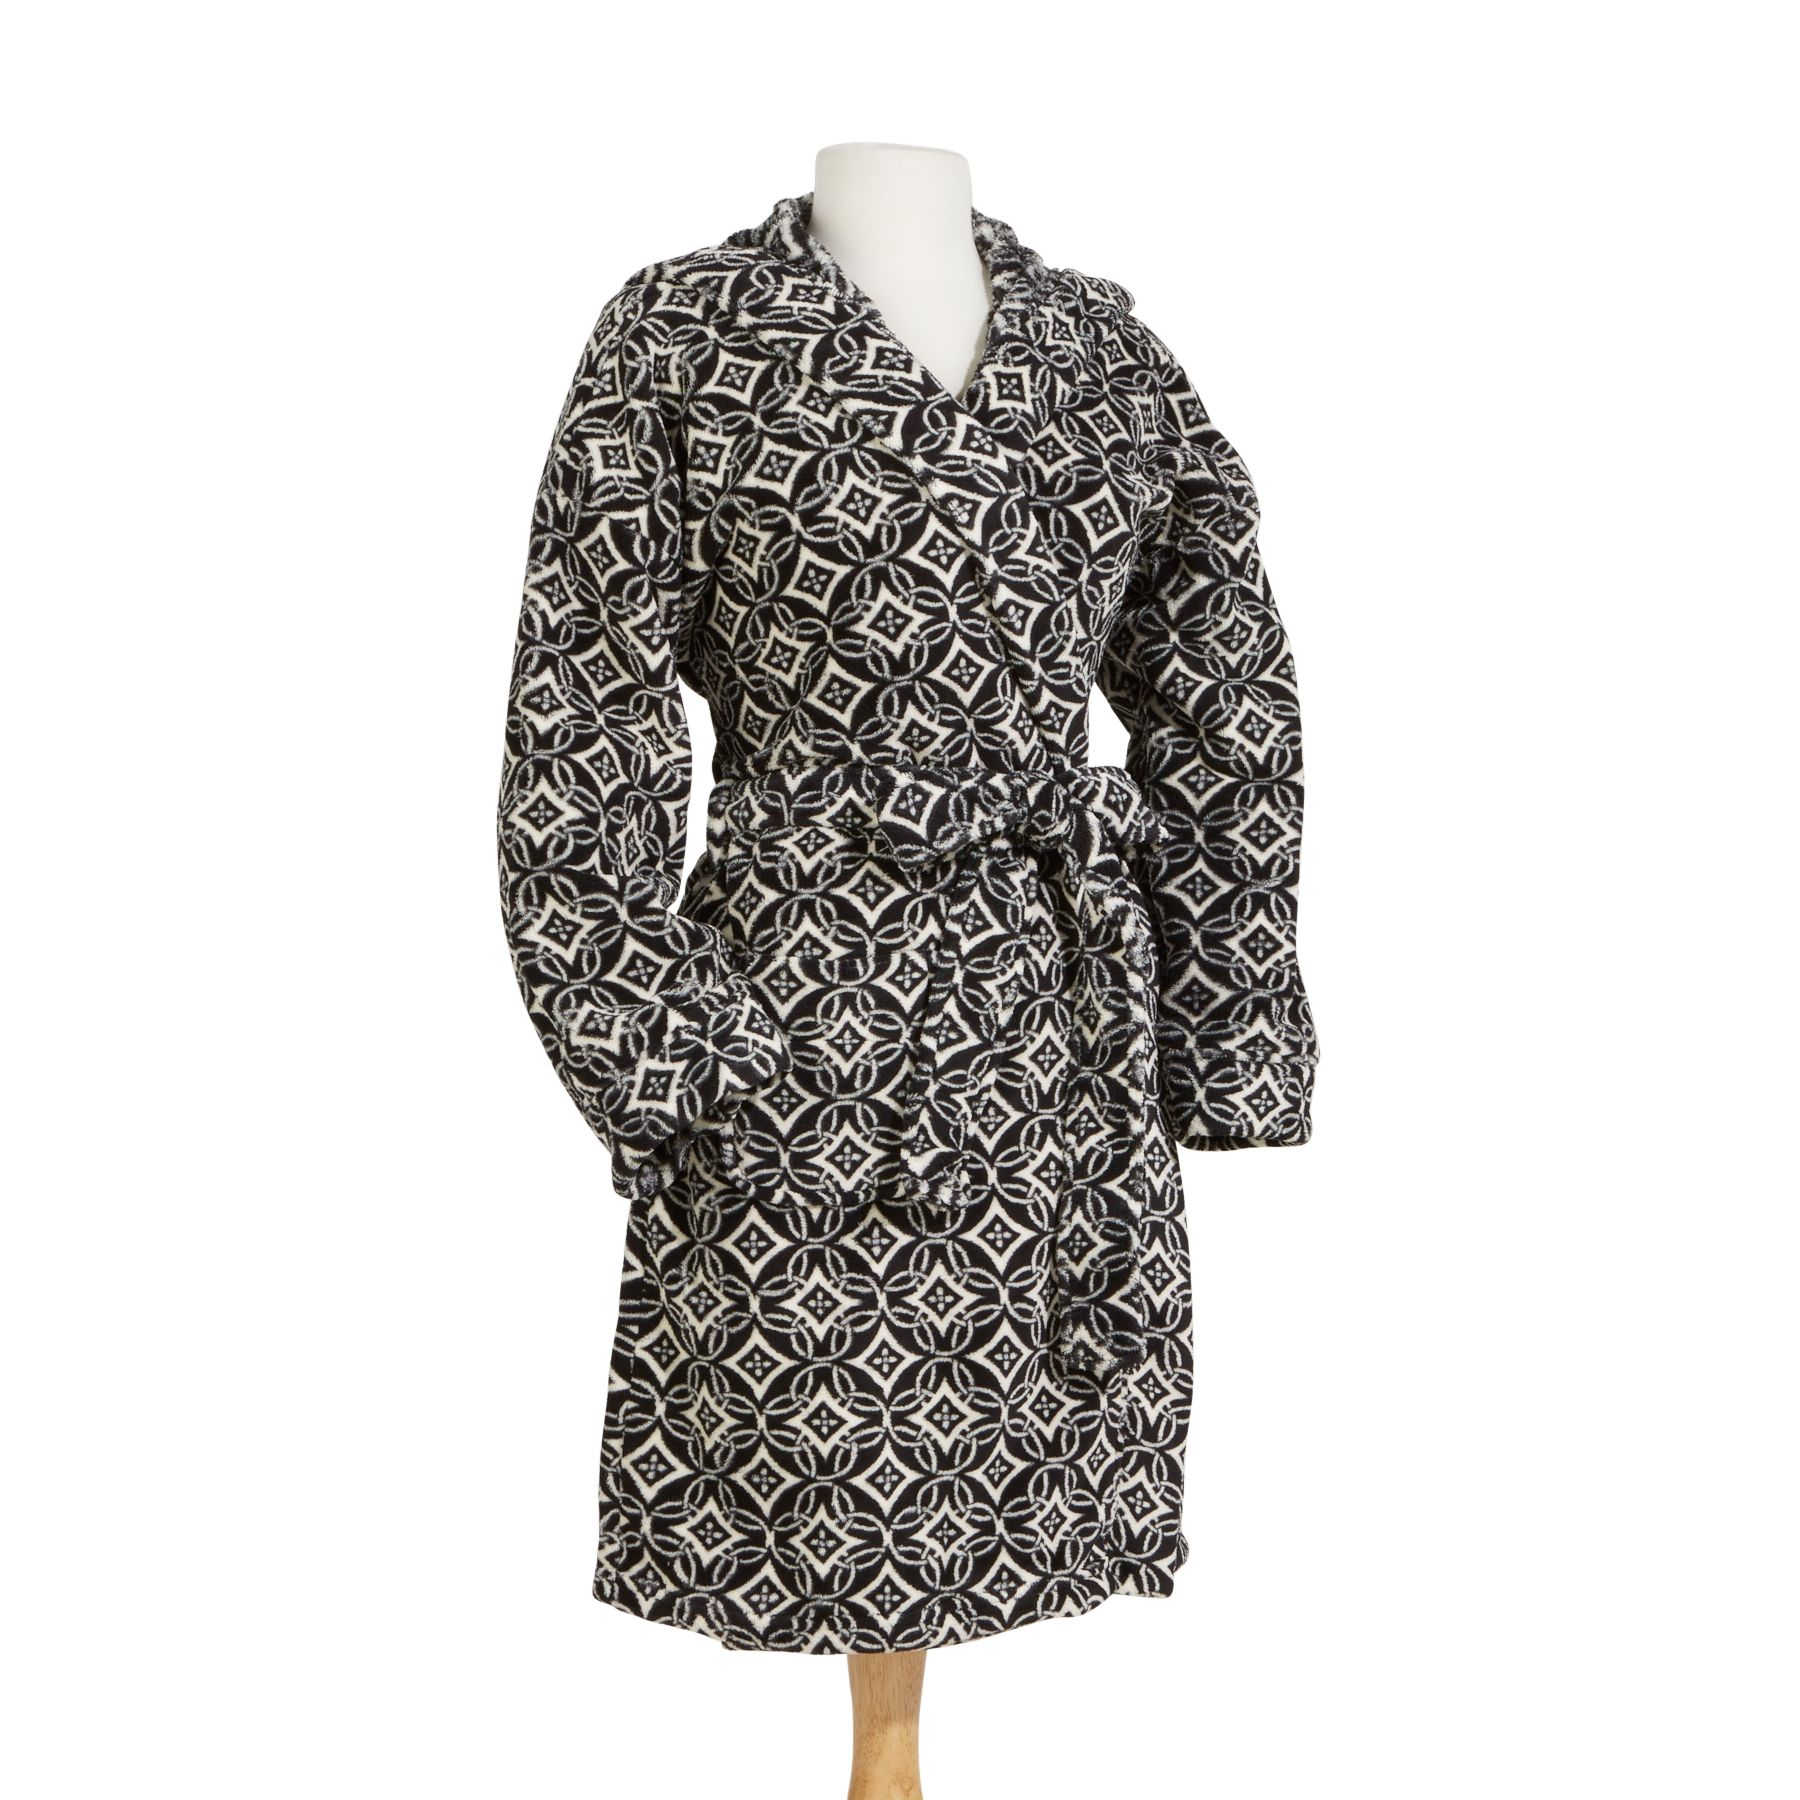 Vera Bradley Hooded Fleece Robe